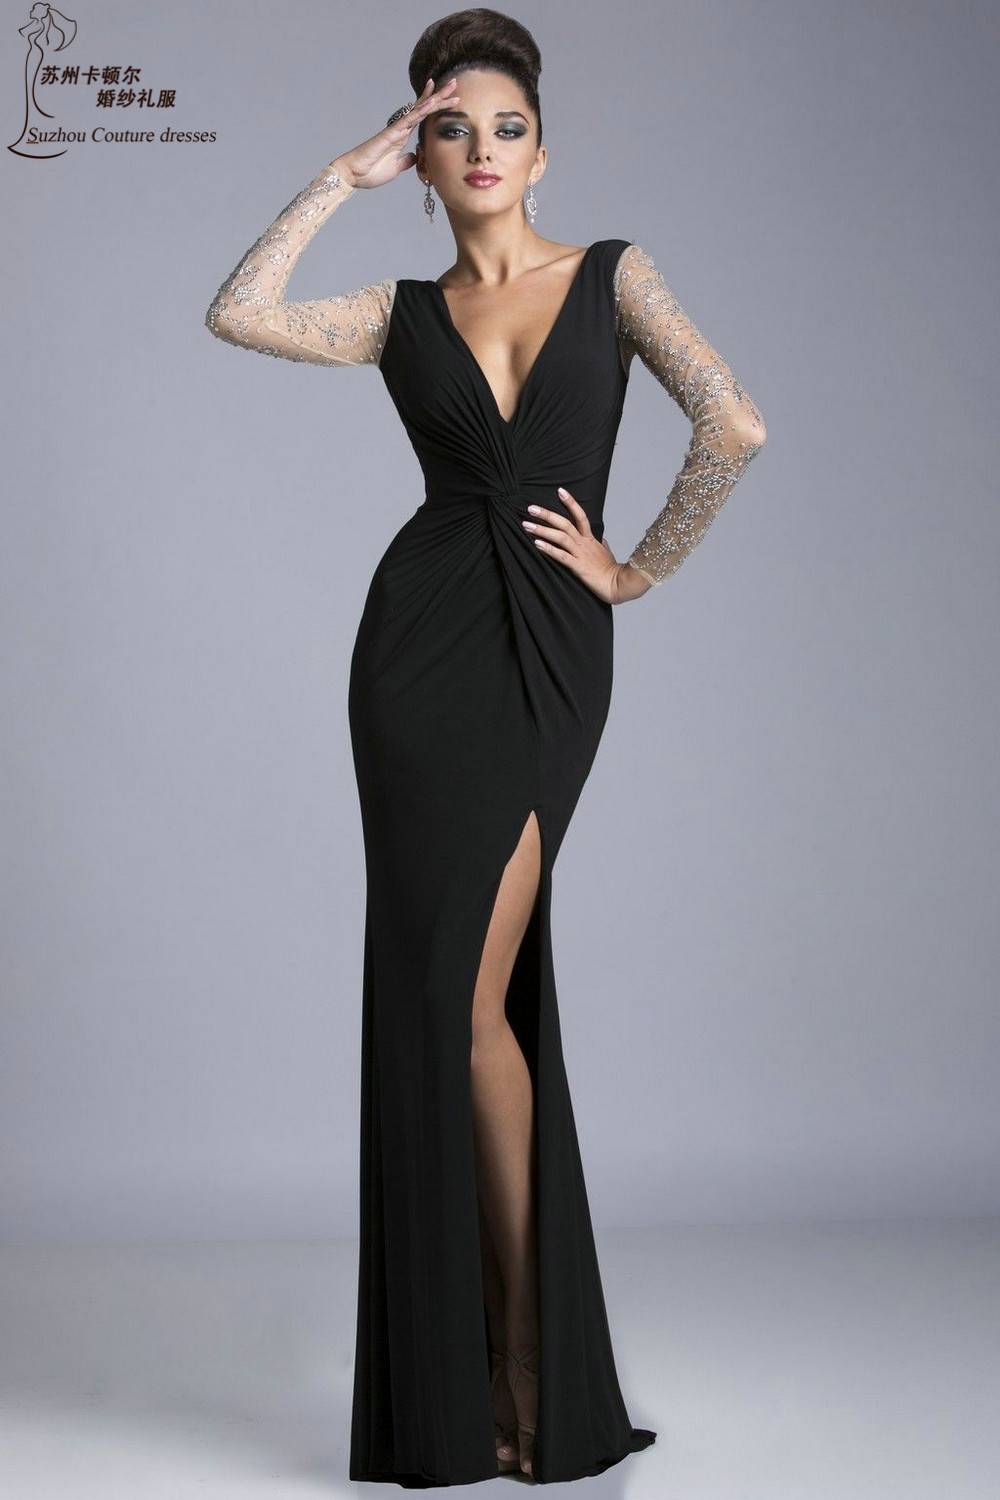 Mermaid Long Sleeve Black Prom Dresses Pm1140 Sexy V Neck Long Party